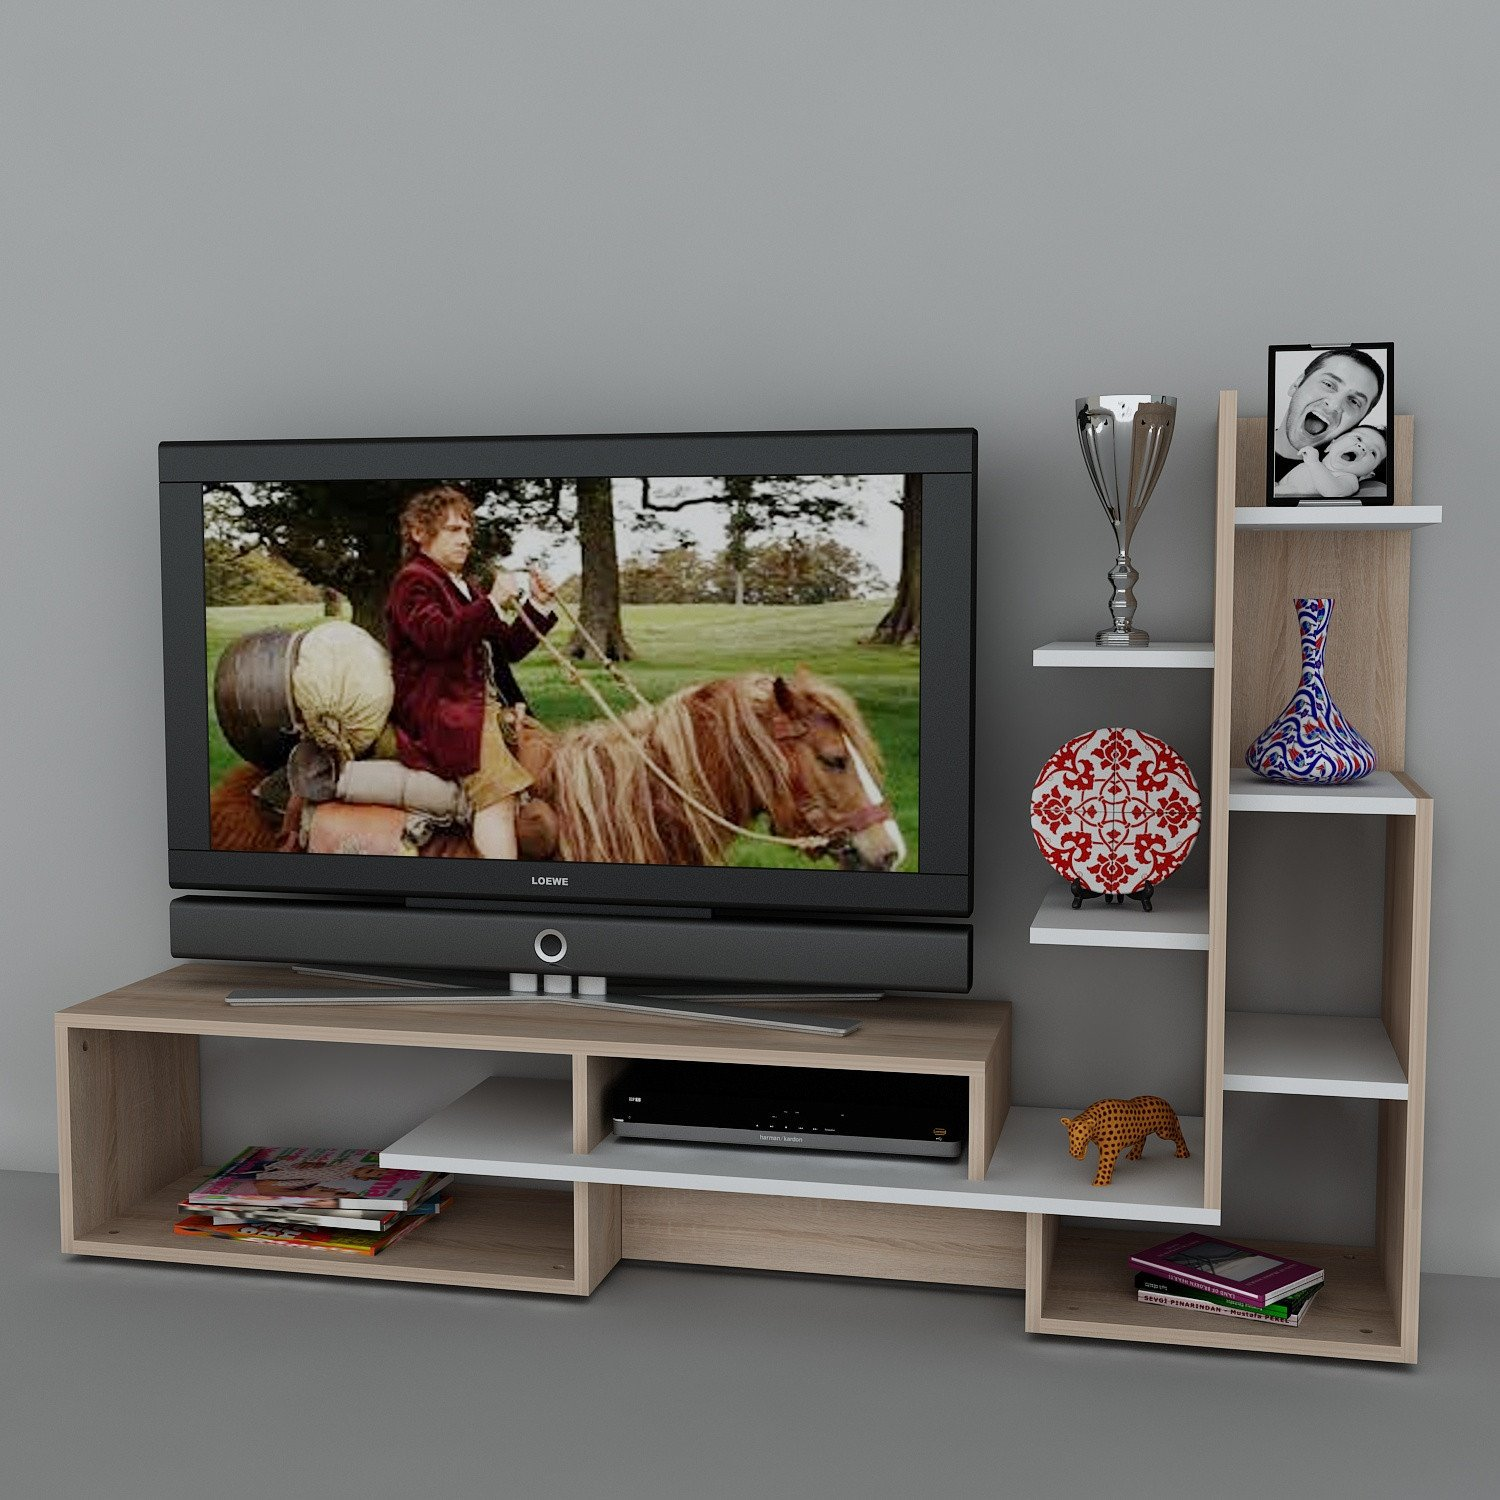 Asir Group Llc 731wat3024 Wooden Art Meuble Tv Amazon Fr Cuisine  # Wooden Art Meuble Tv